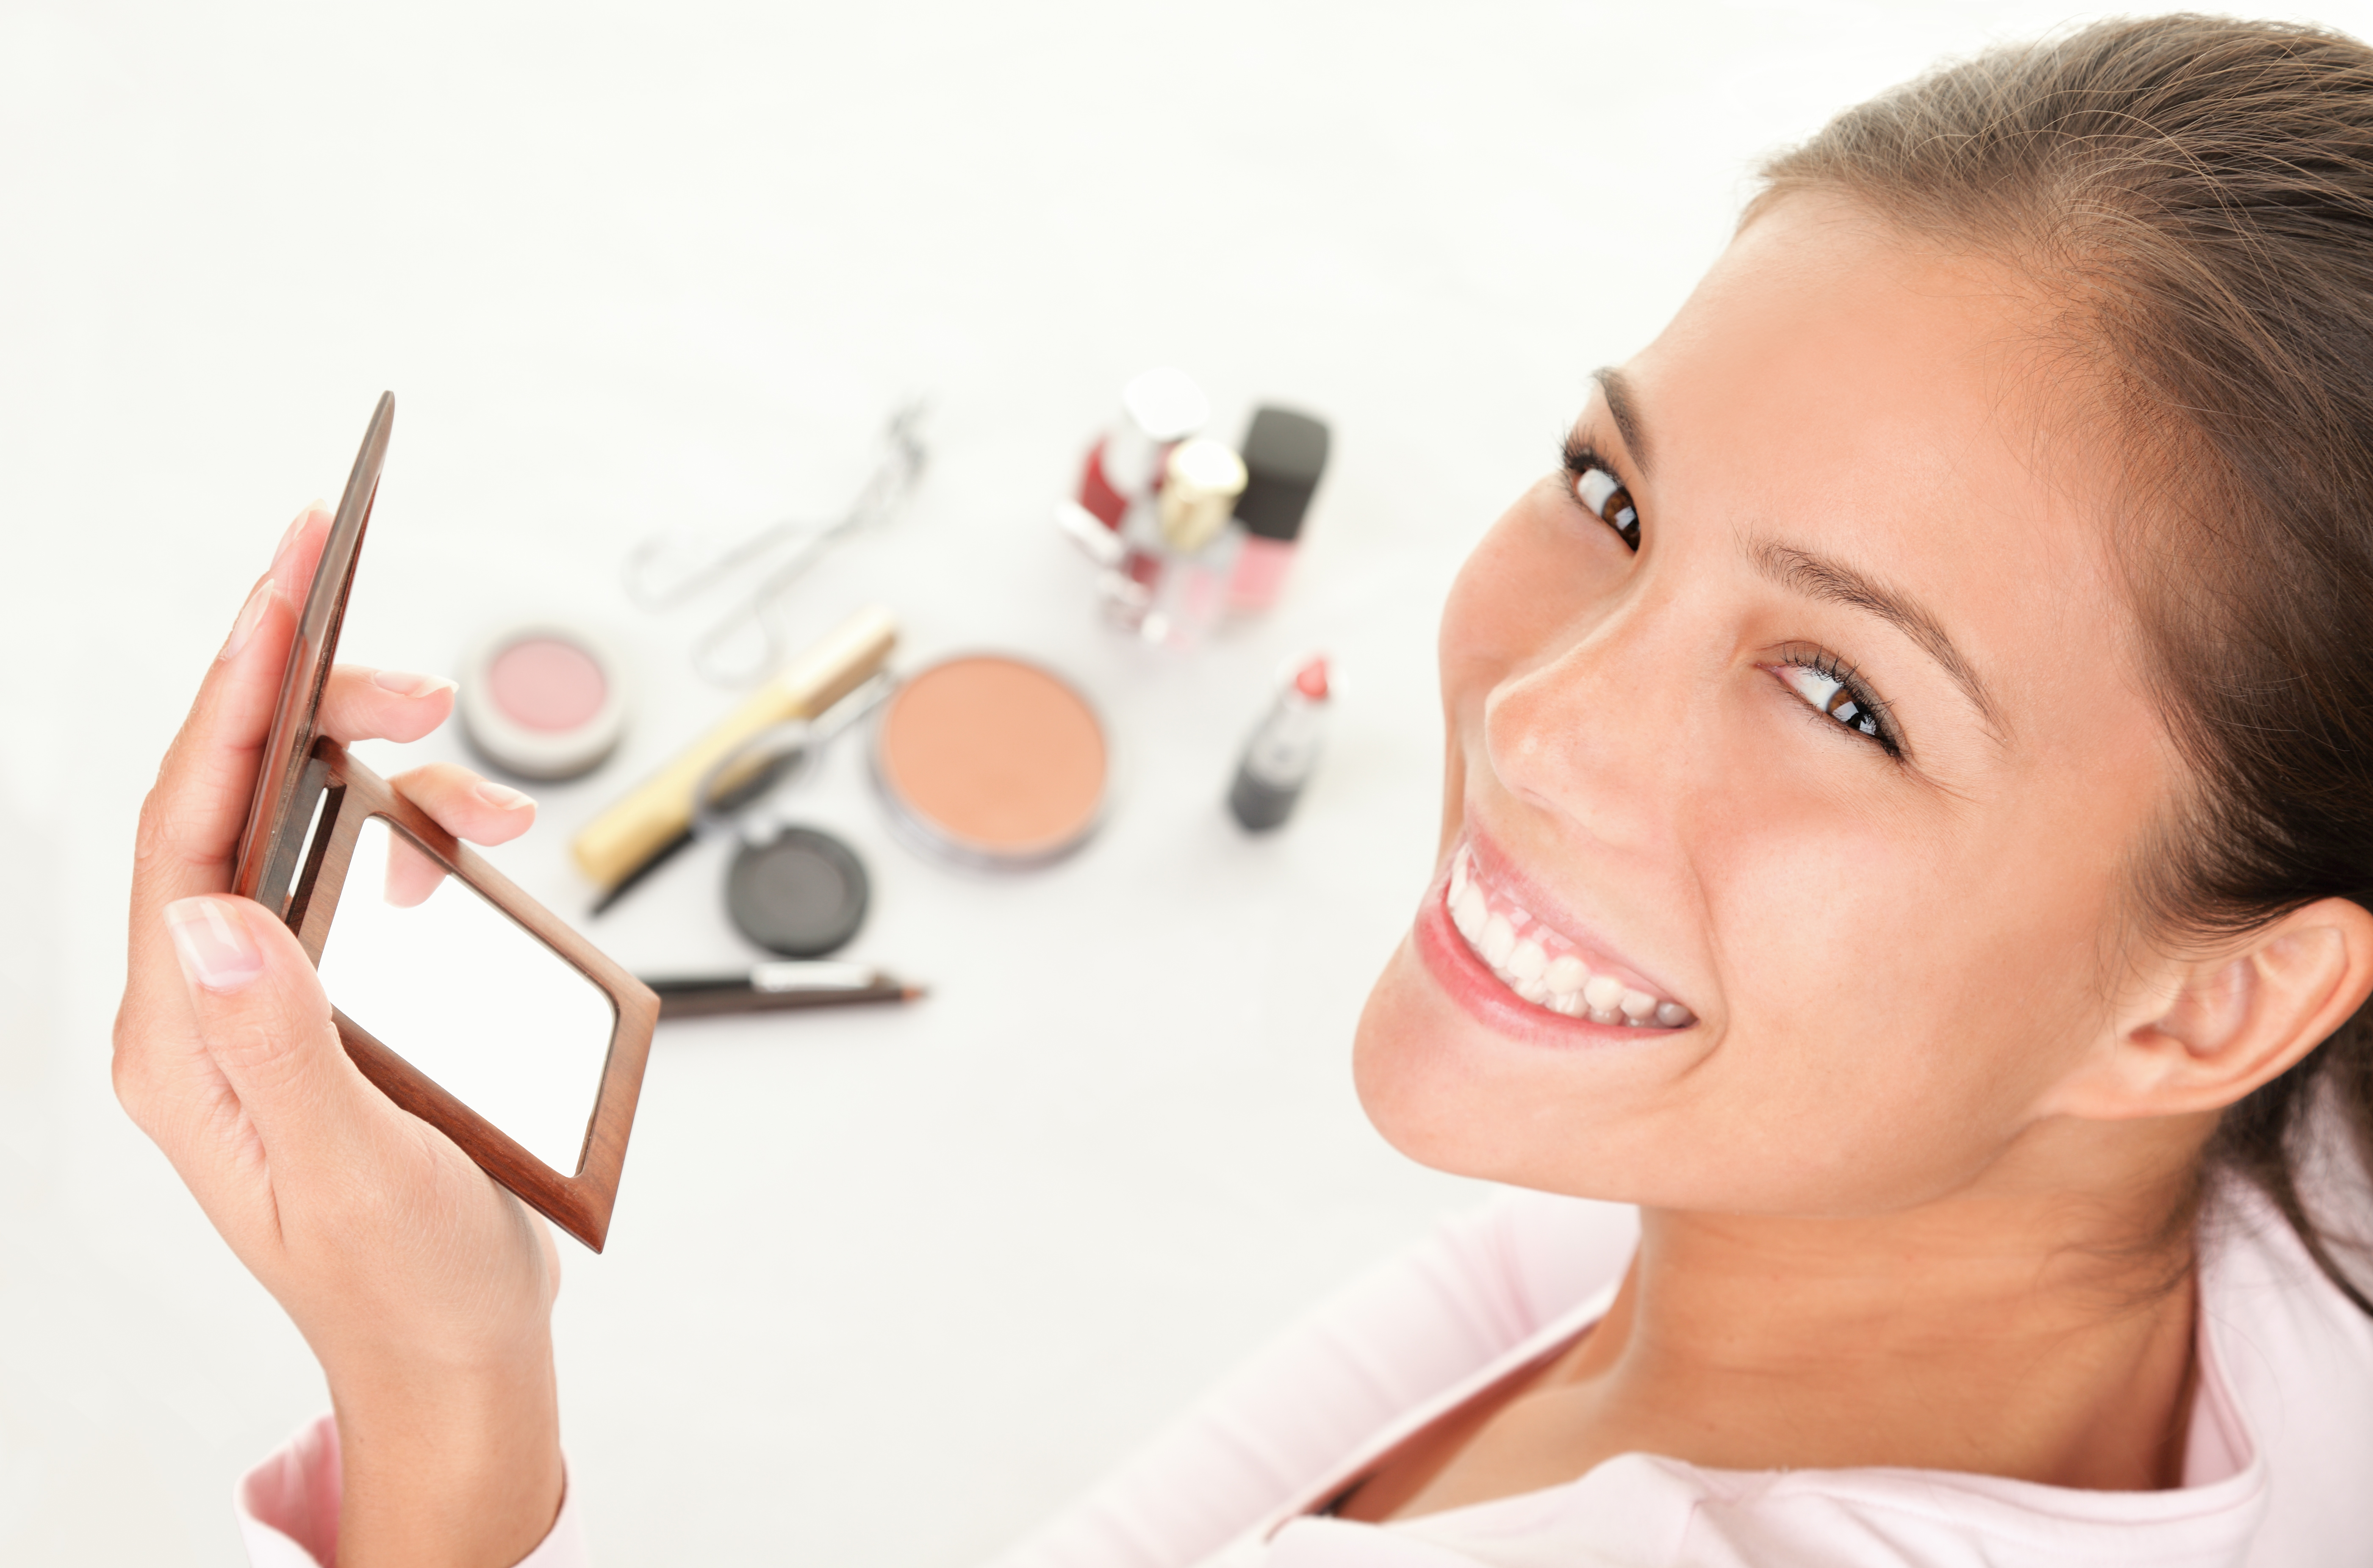 young women posing with makeup in the background